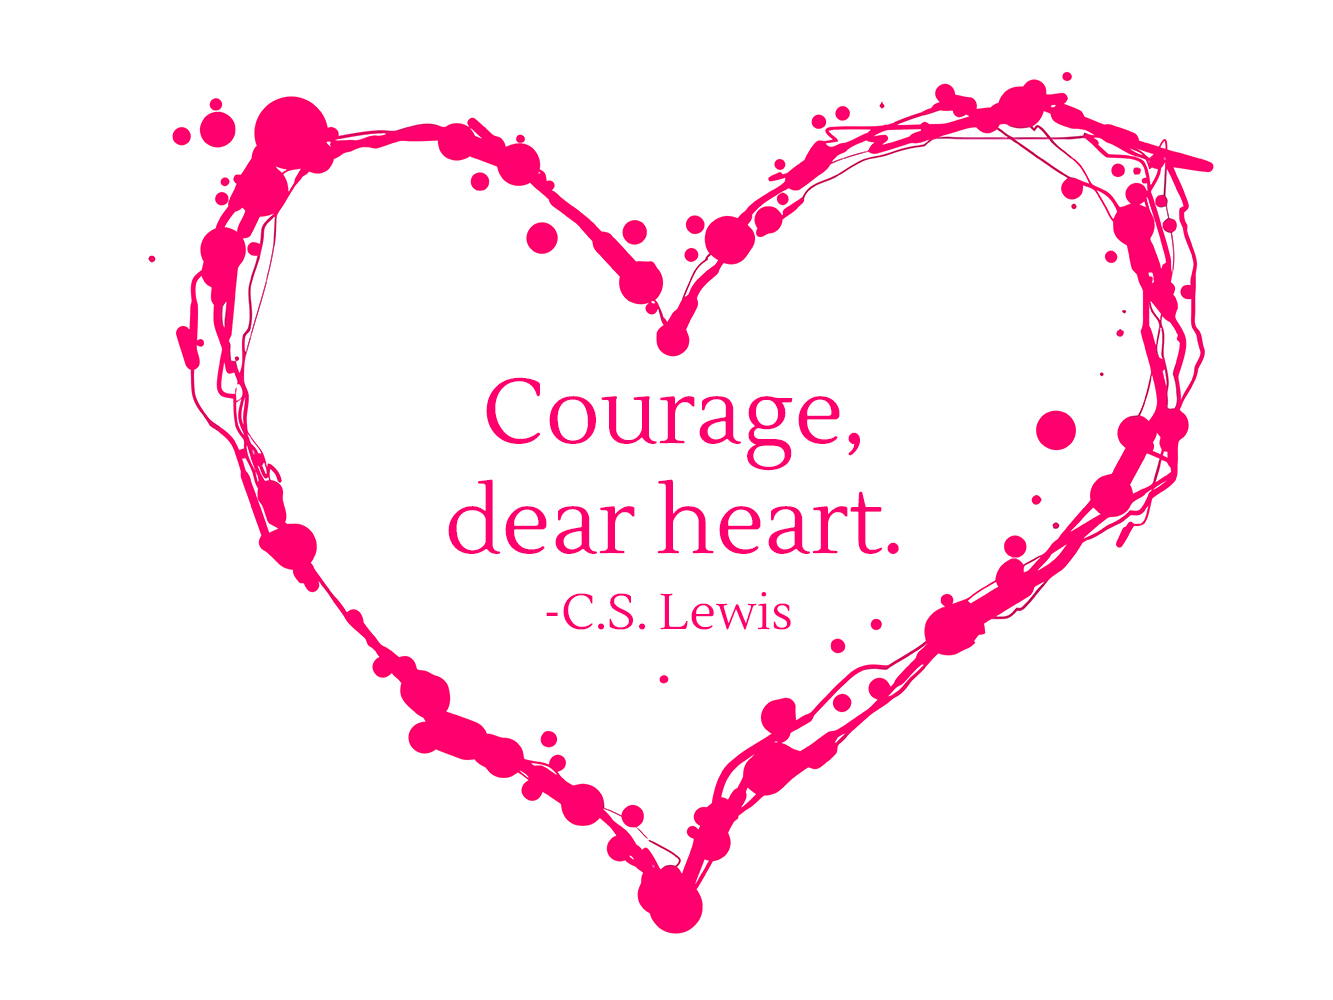 Courage, dear heart. - C.S. Lewis | theactsofcourage.com